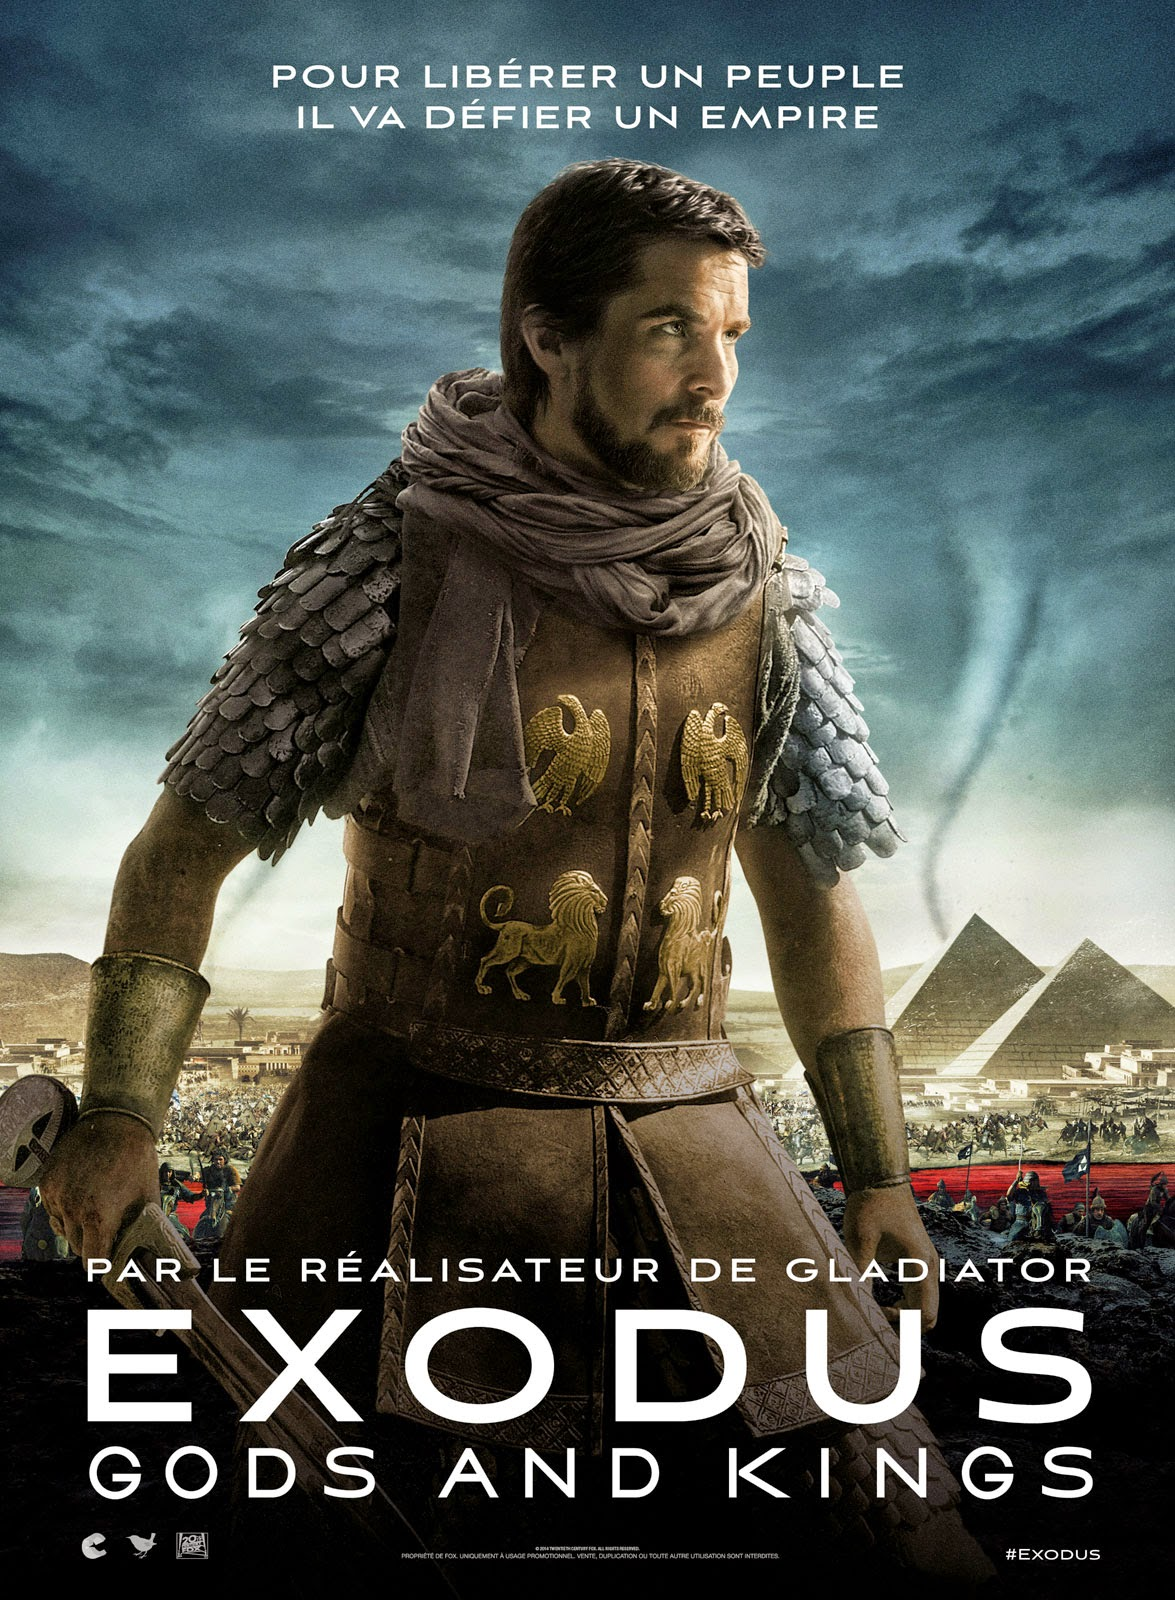 http://fuckingcinephiles.blogspot.fr/2014/12/critique-exodus-gods-and-kings.html